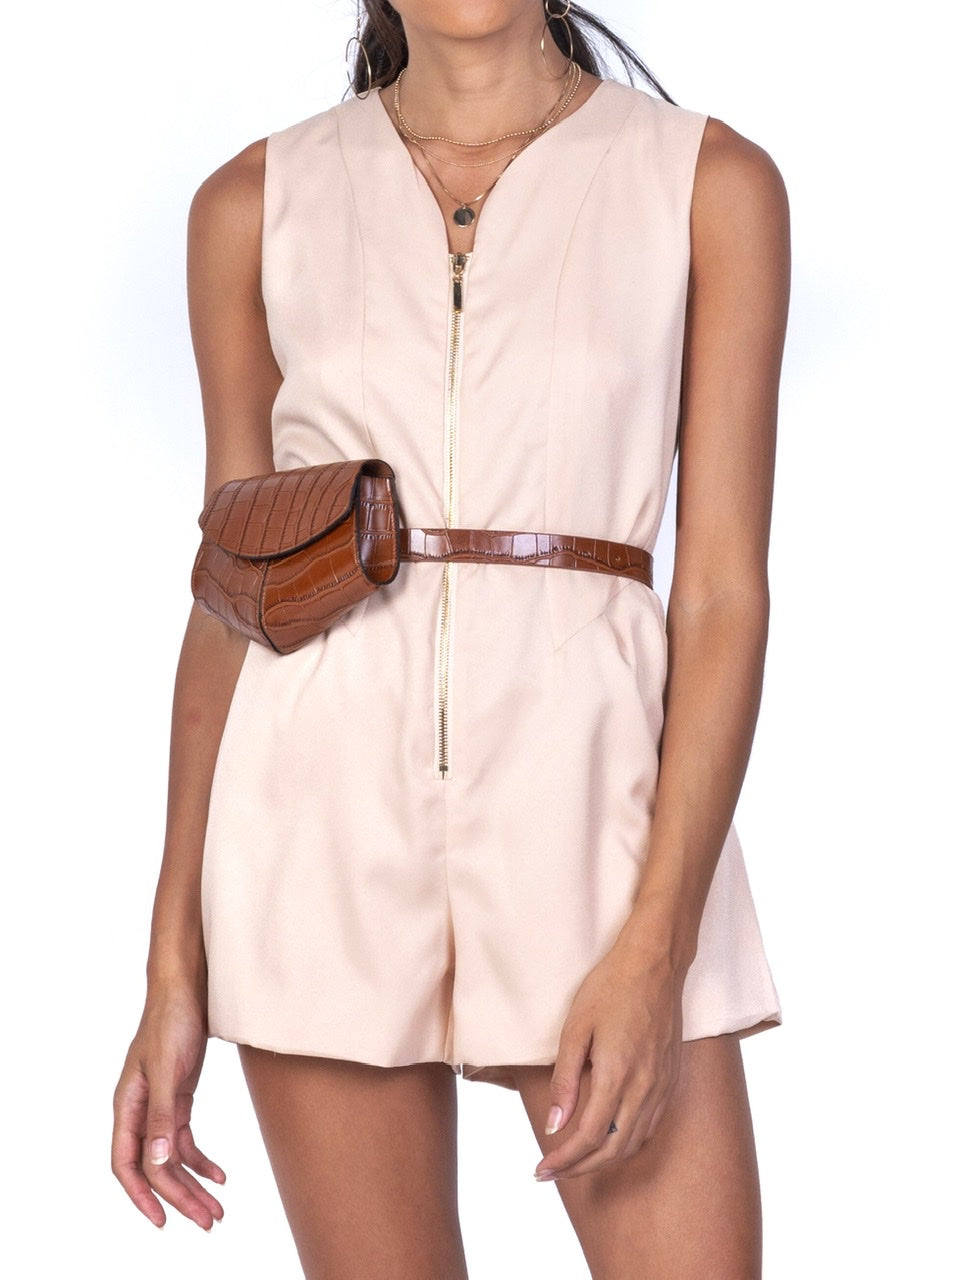 ZIPPER FRONT SLEEVELESS ROMPER (4684259229780)